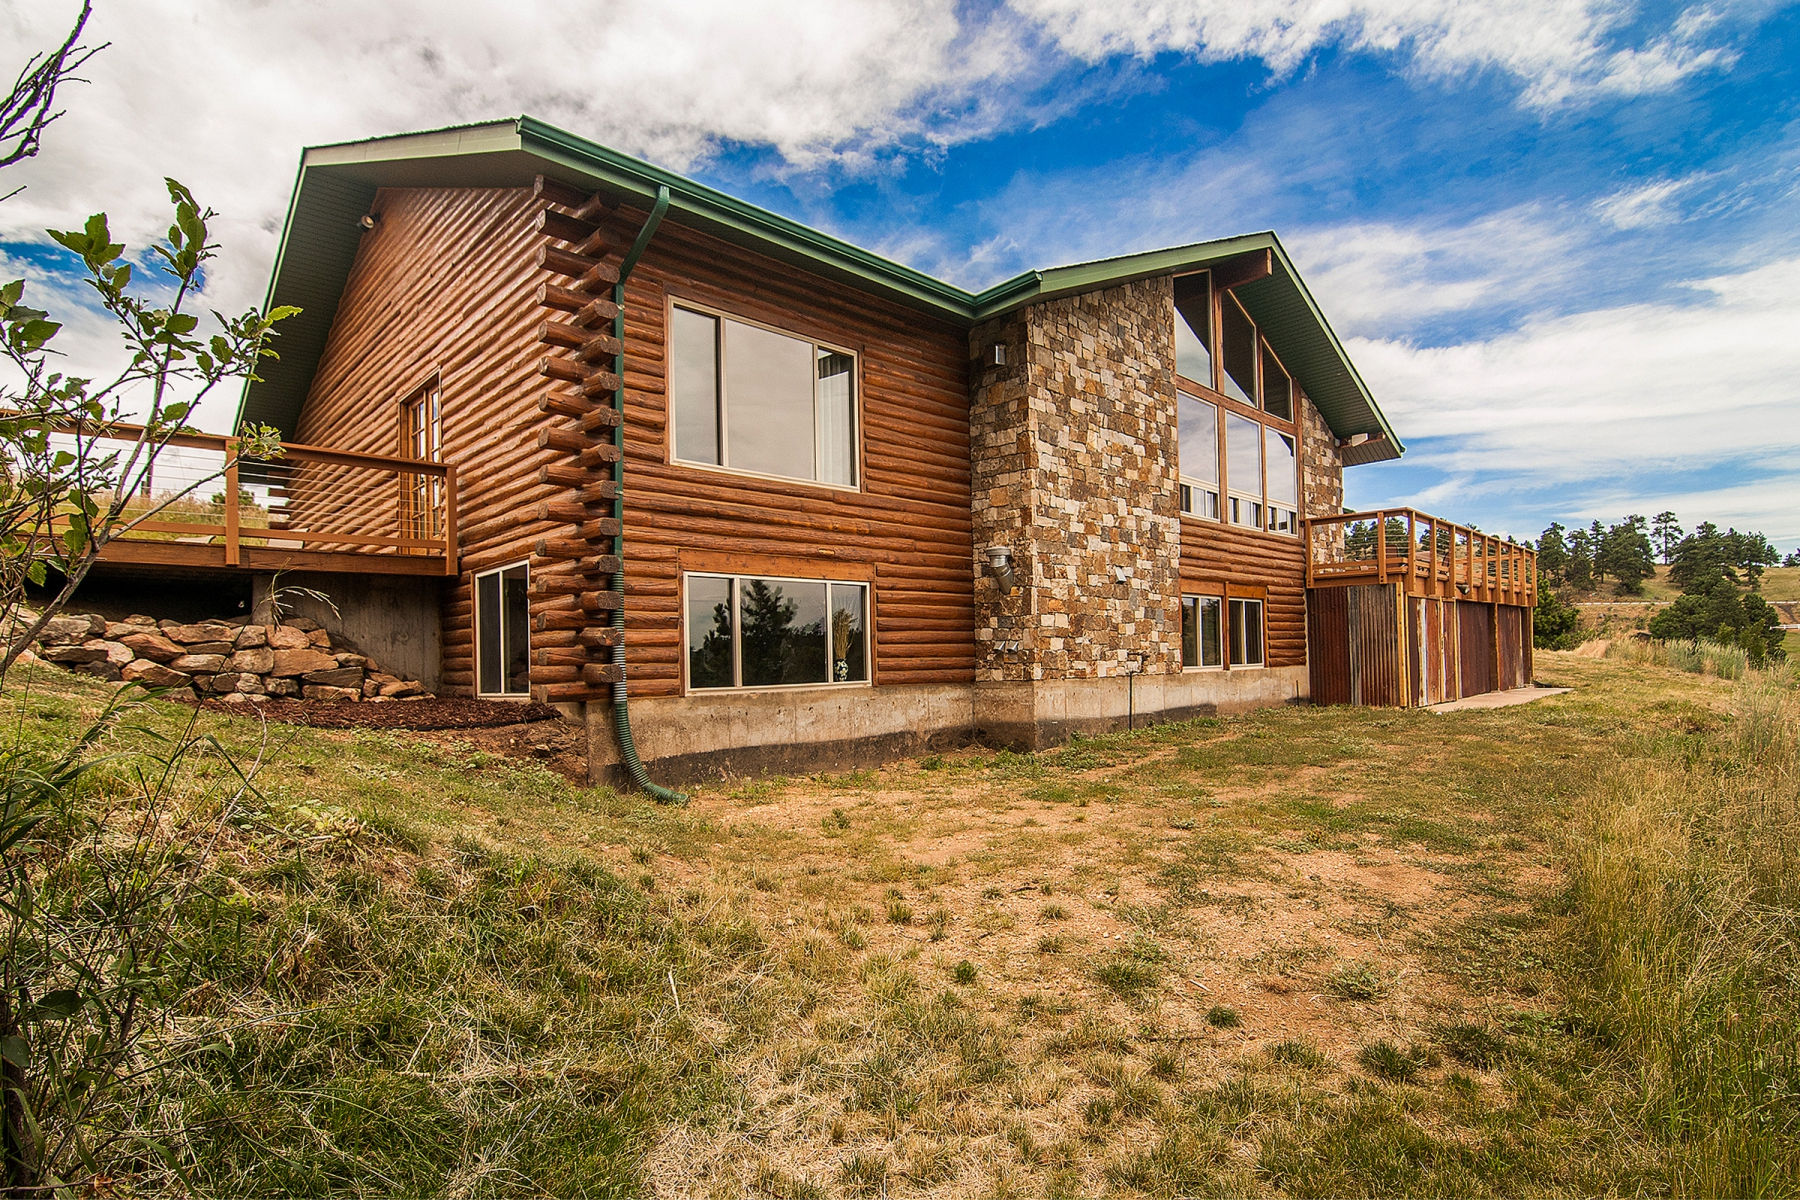 Single Family Home for Sale at close-in ranch style living 24280 Rockland Road Golden, Colorado 80401 United States